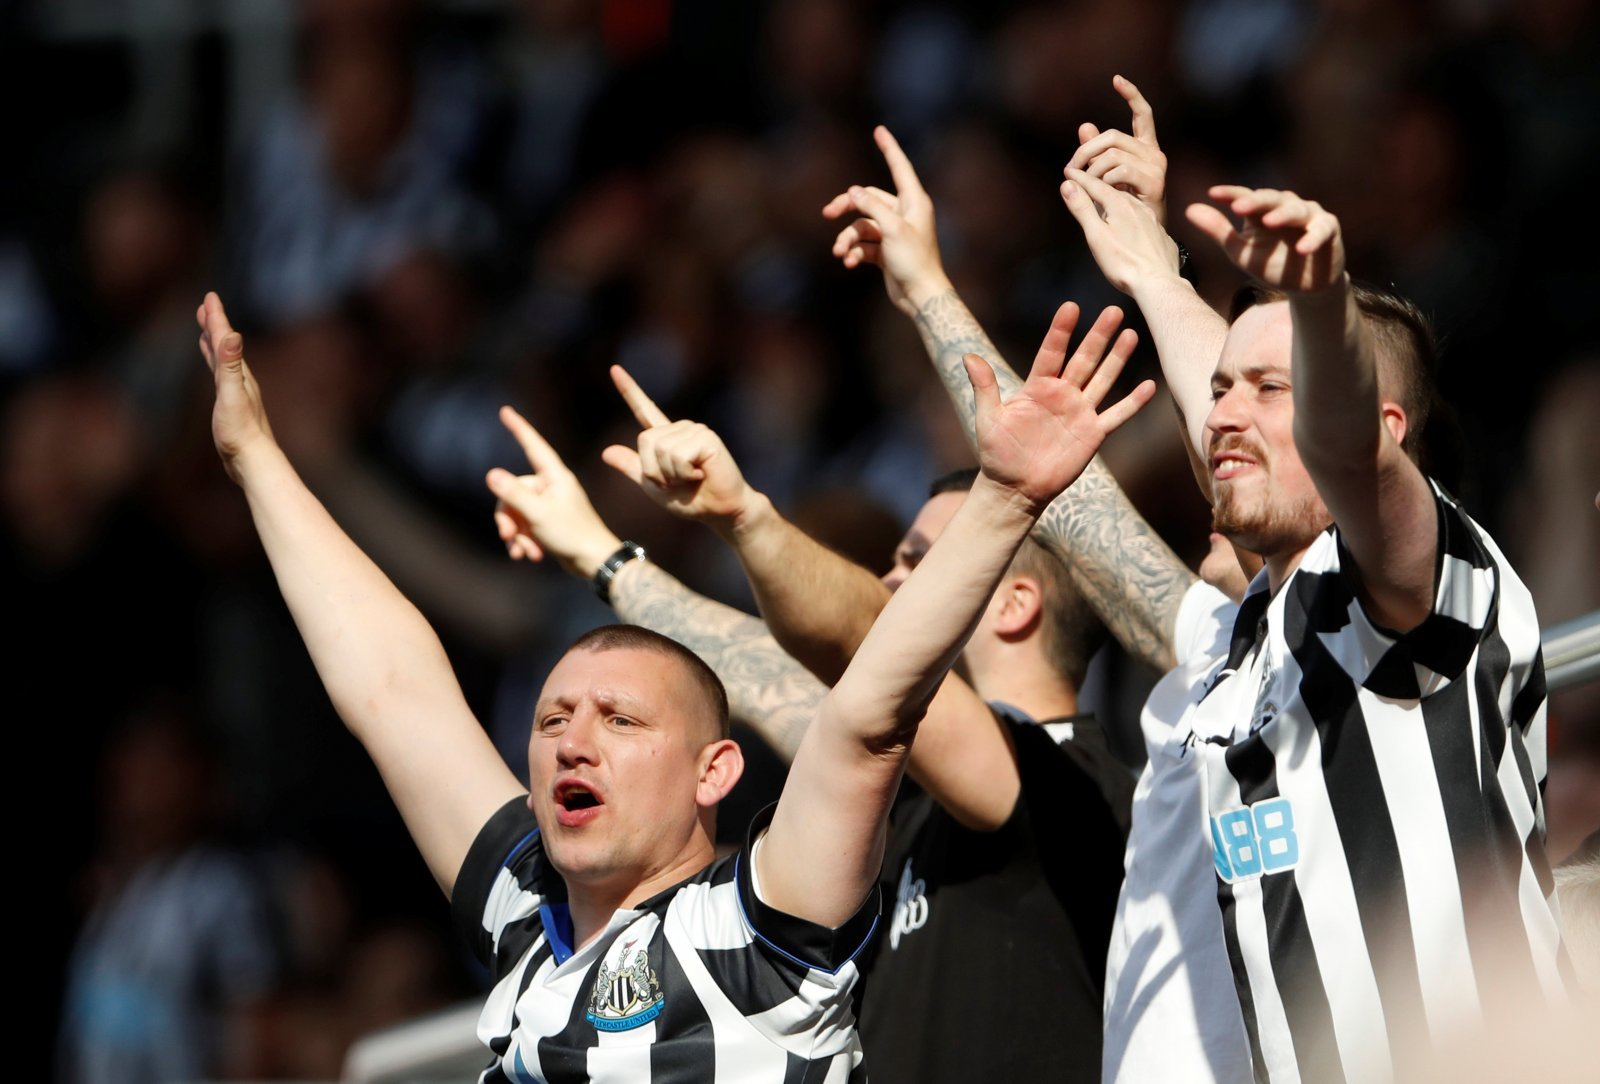 Clueless: Newcastle United fans rank their top 3 worst pundits